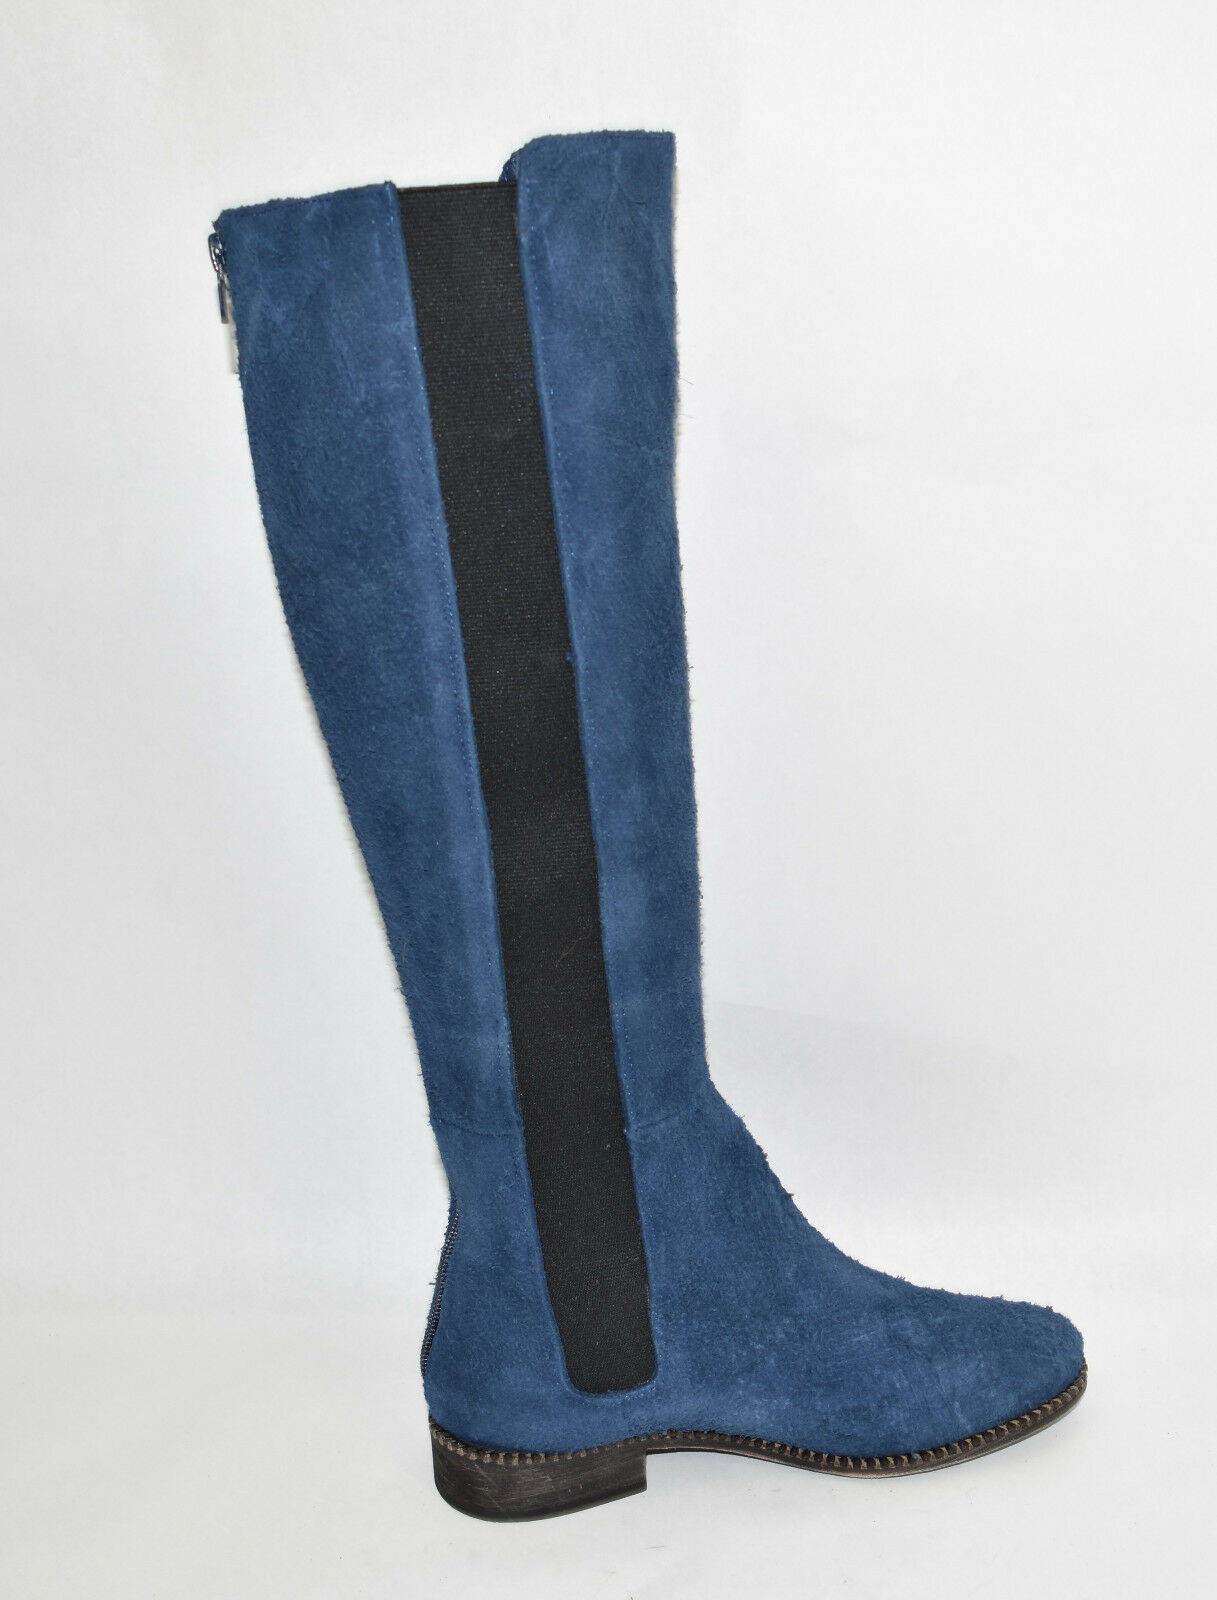 New  Free People EU Callow Tall Boot Blau Distressed Suede Sz 37 EU People 7 US Back Zip 348701